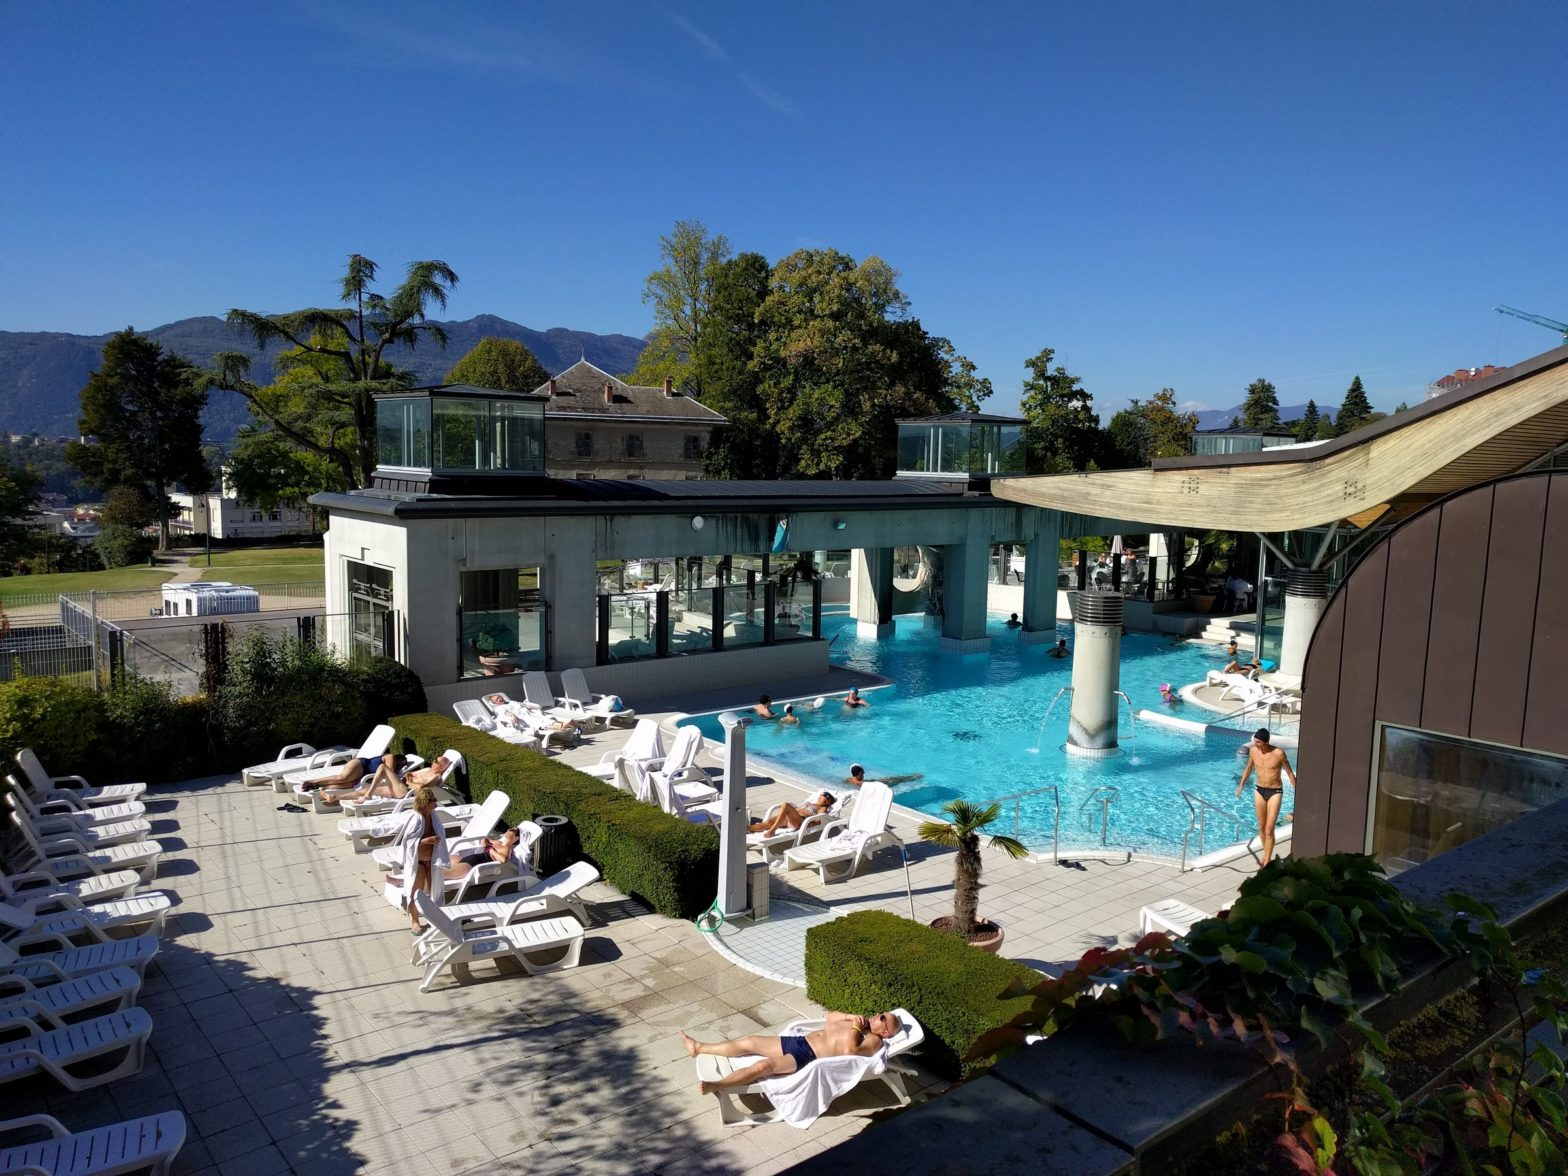 spa-thermal valvital - thermes chevalley - aix73